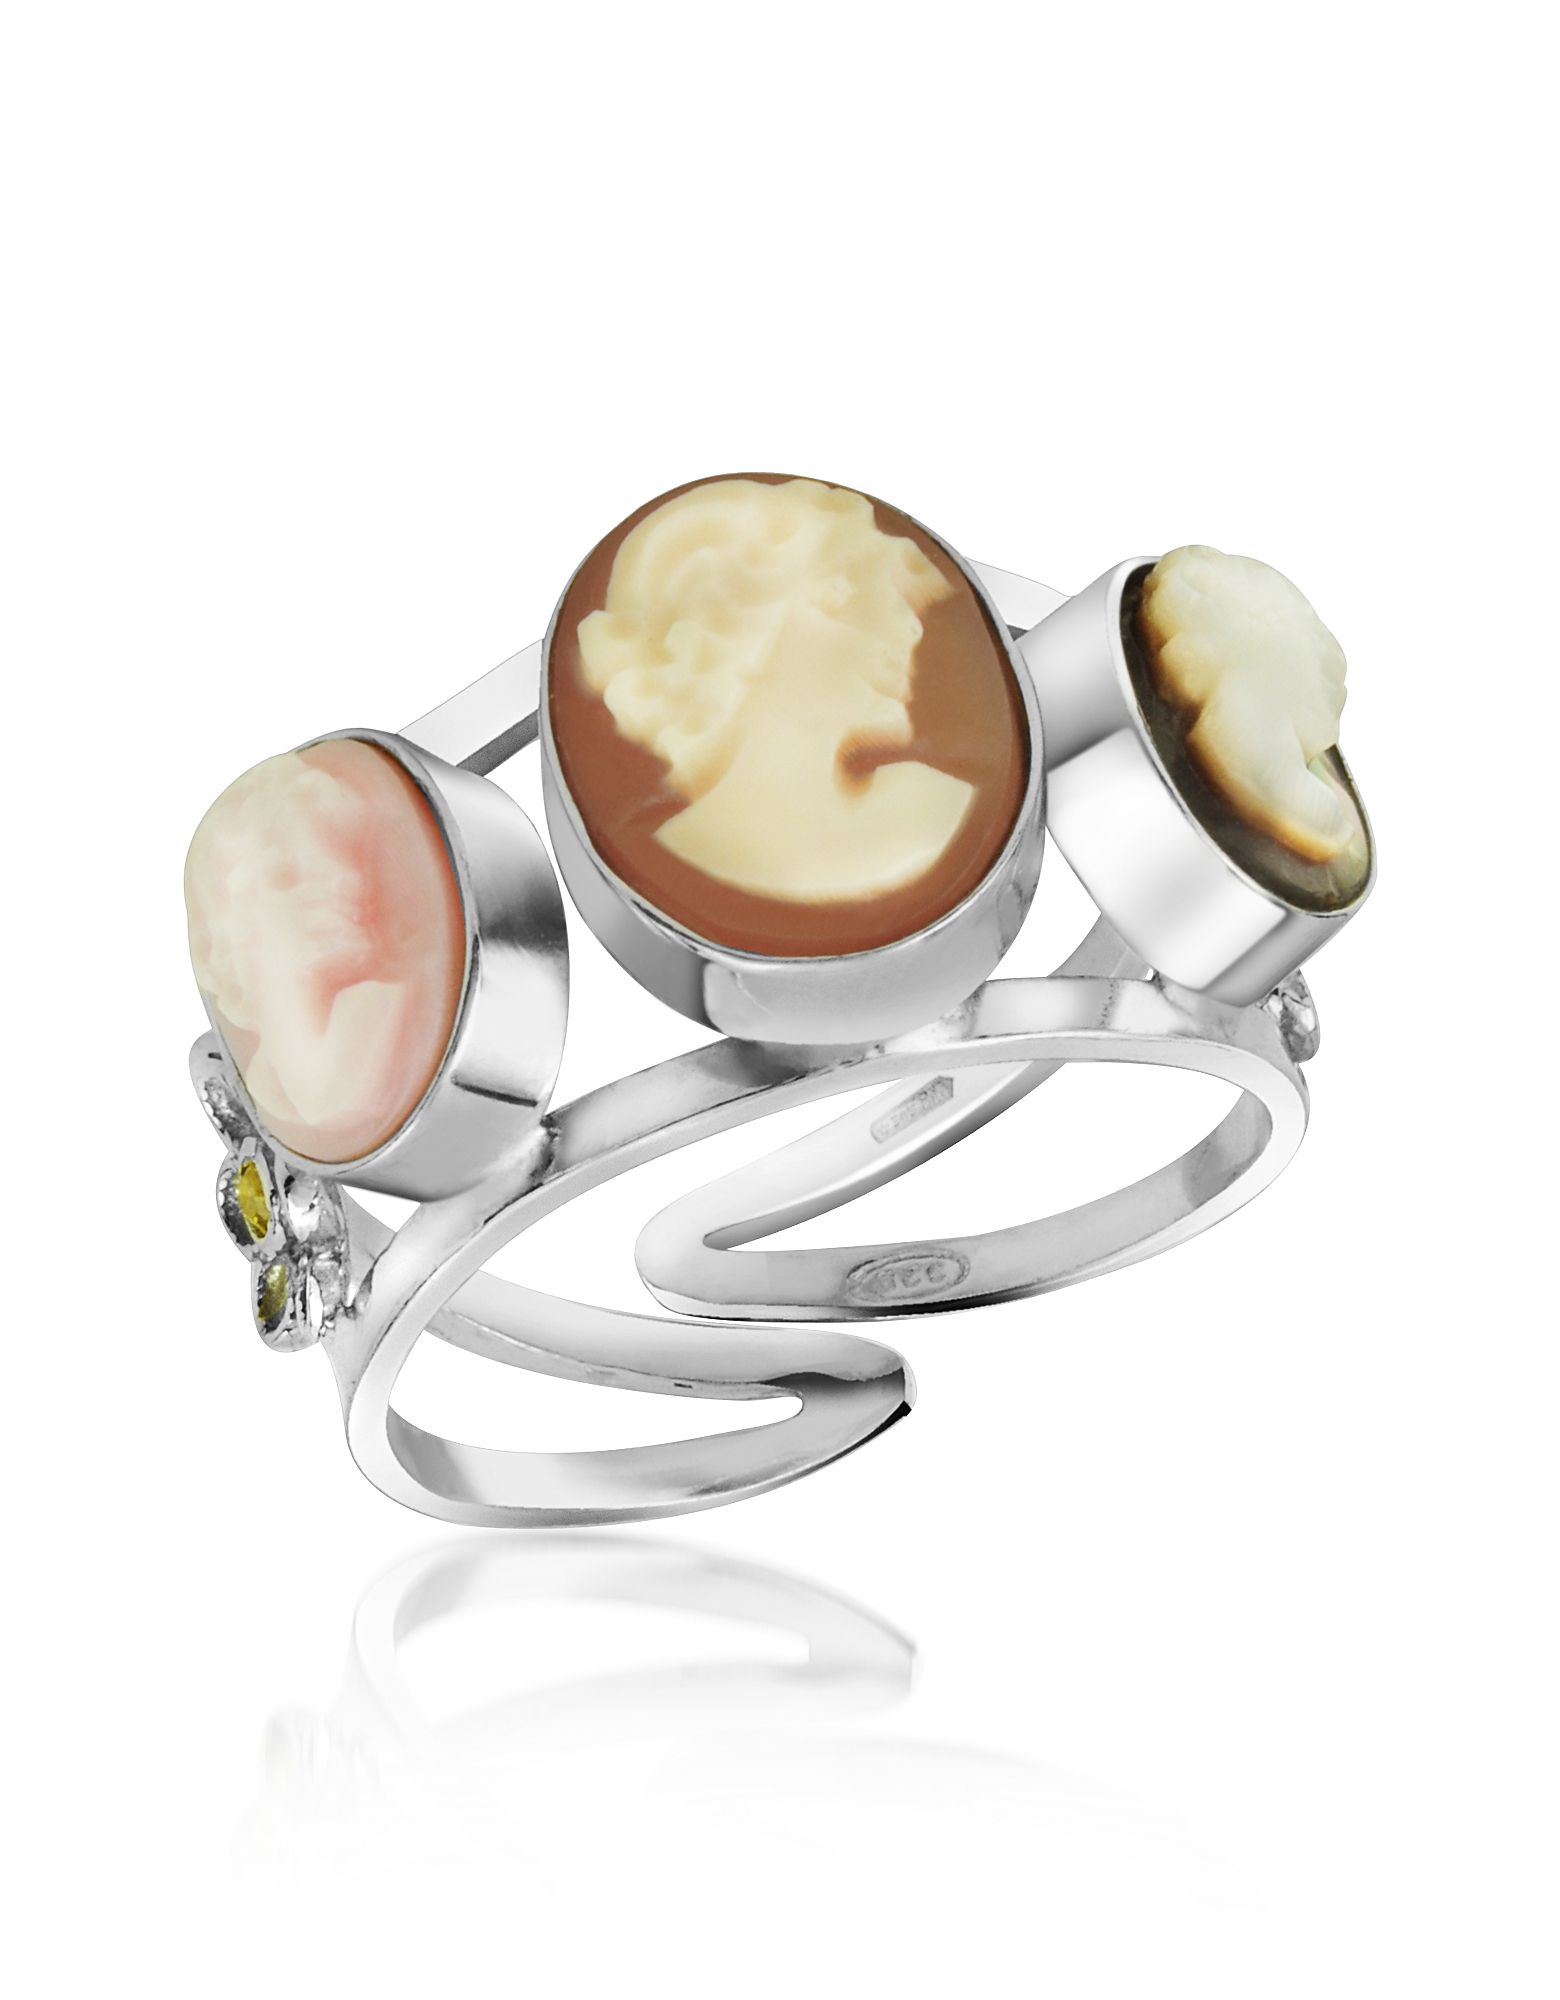 Mia & Beverly Cameo, Cameo Trio Ring